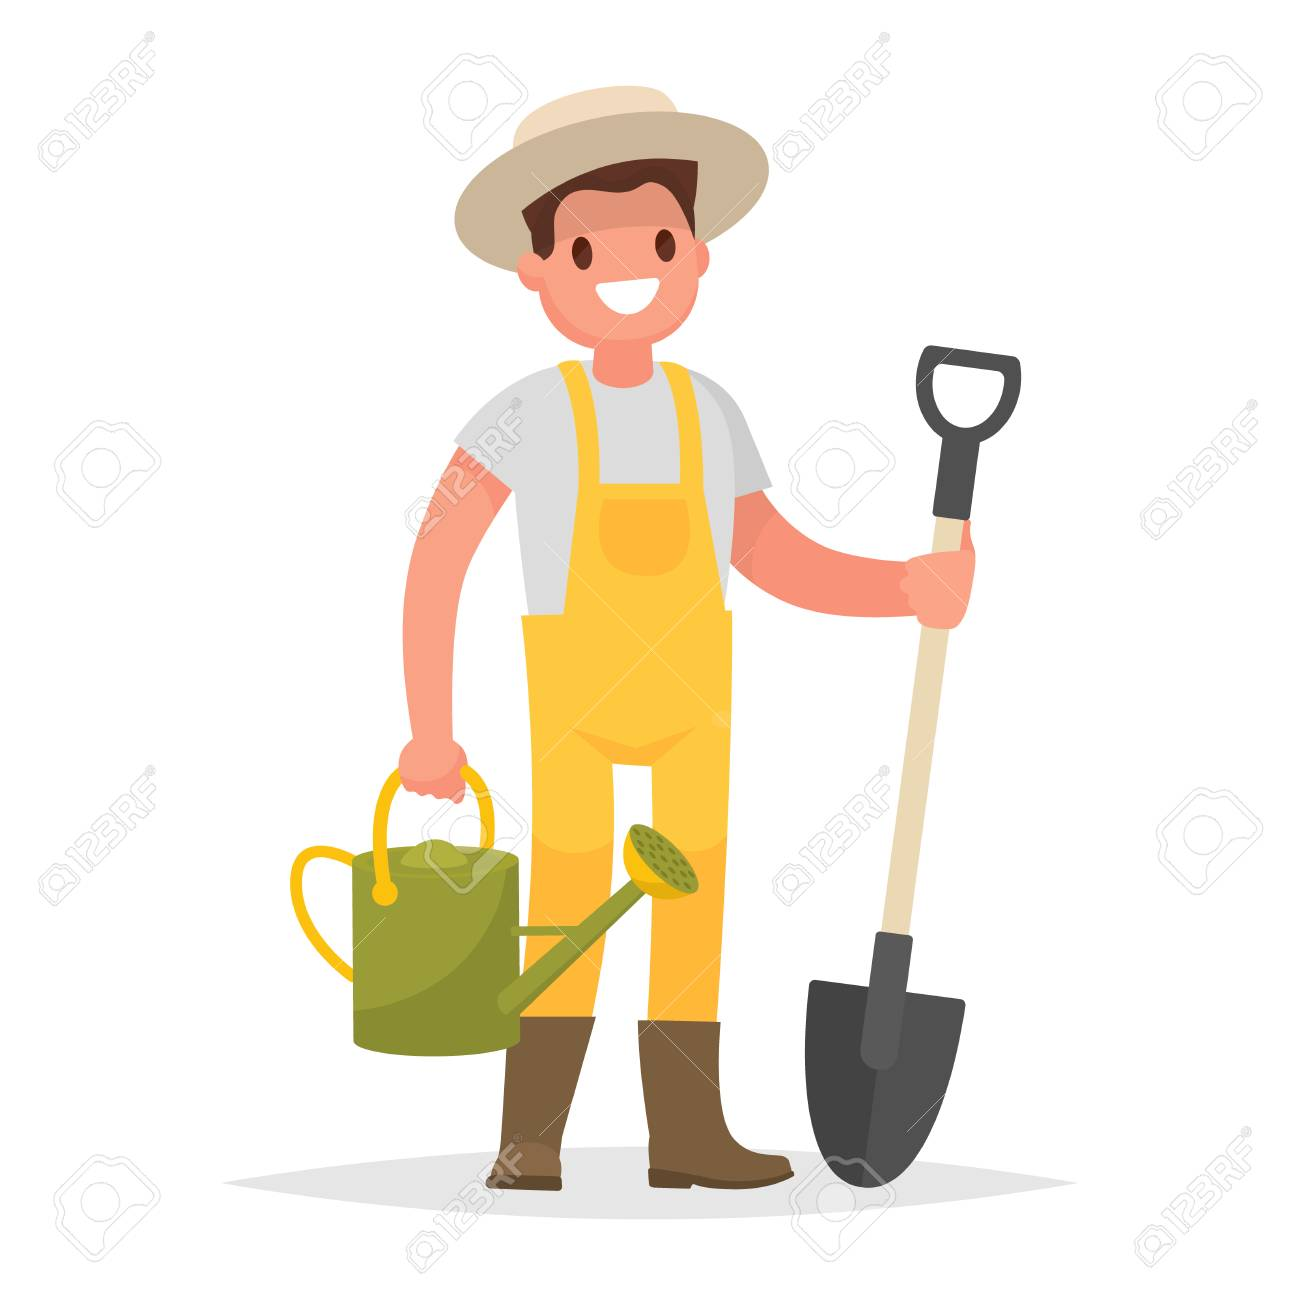 Happy gardener man with a shovel and watering can on a white background. Vector illustration in a flat style - 80907071